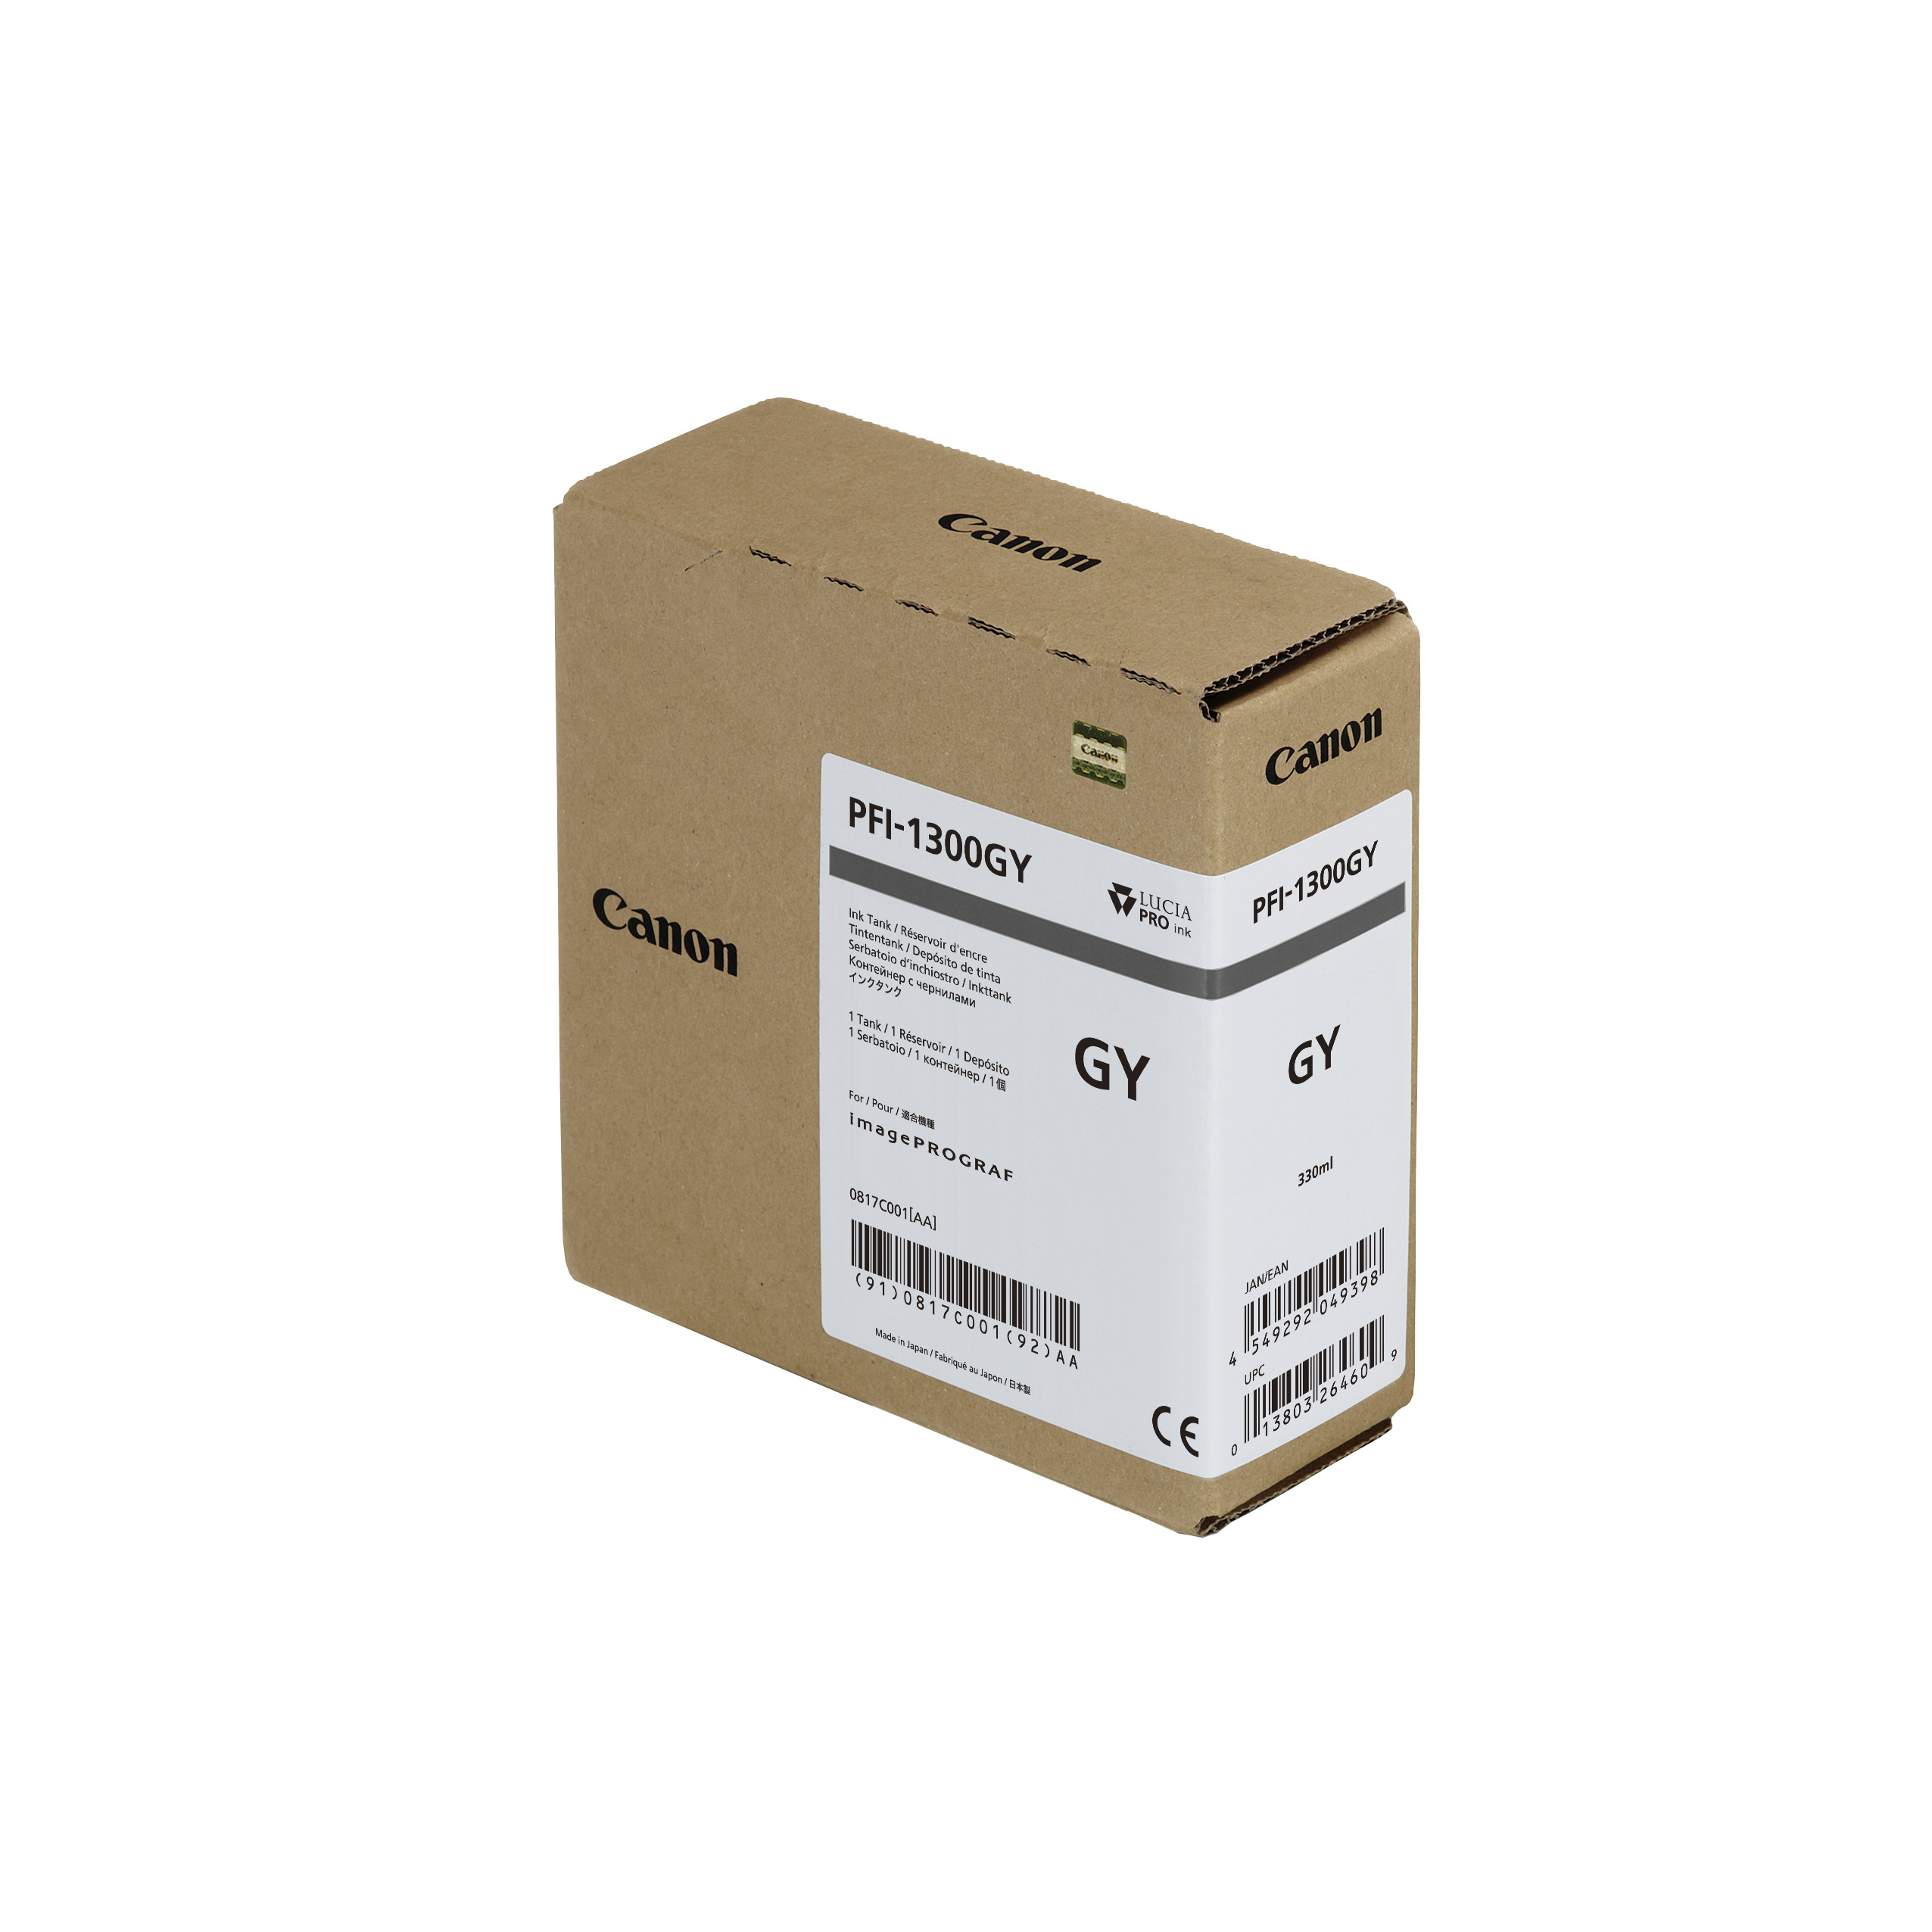 Canon PFI-1300GY Grey Ink Tank - 330ml Cartridge - for Canon PRO-2000, PRO-4000, PRO-4000S & PRO-6000S Printer - 0817C001AA - from GDS | Graphic Design Supplies Ltd